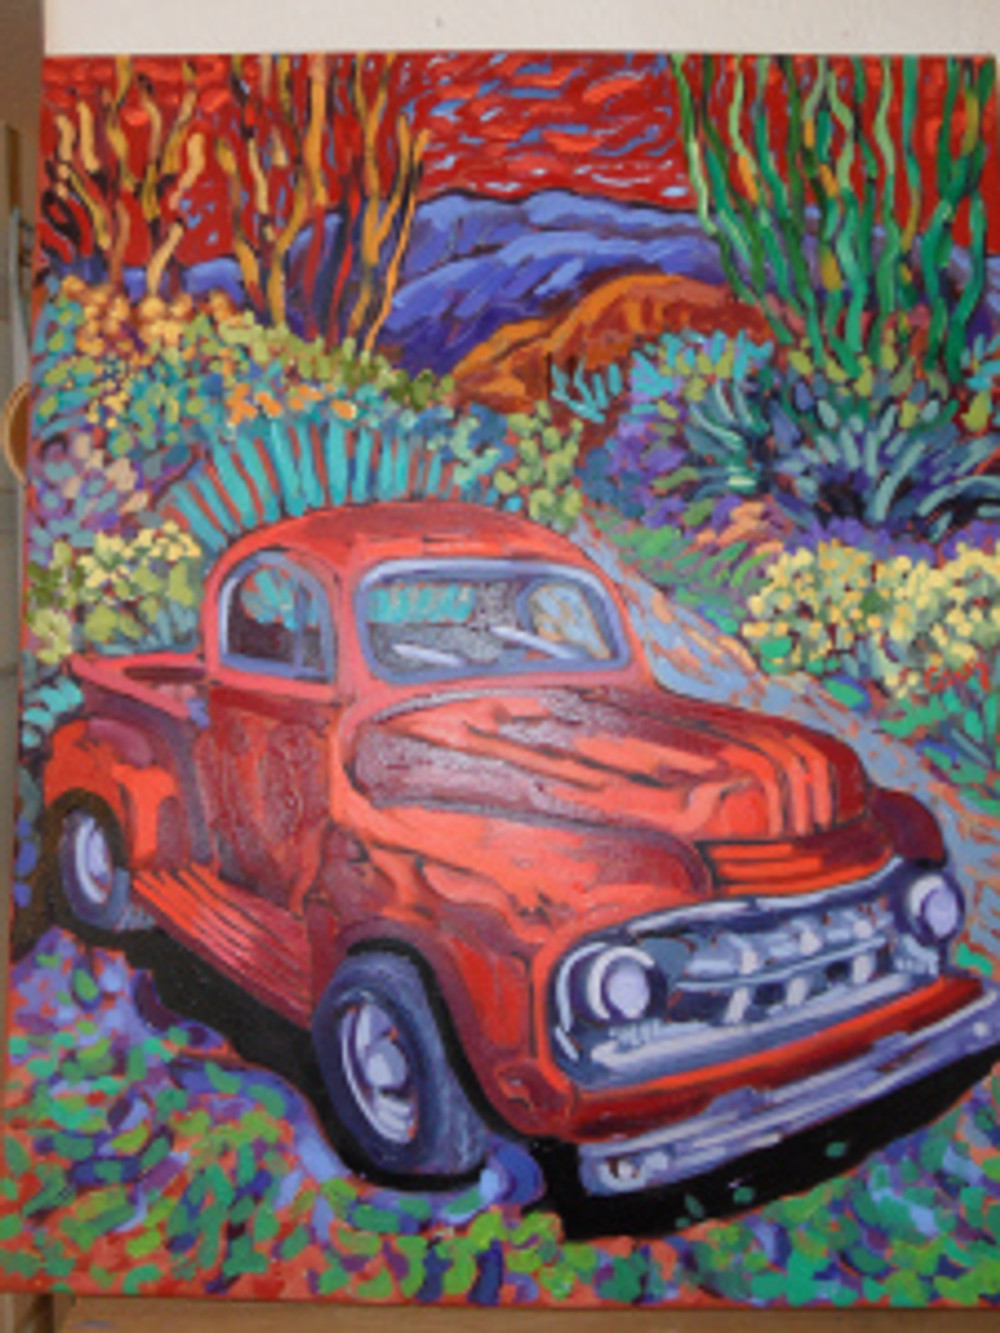 Red Truck Luck by Cathy Carey ©2014